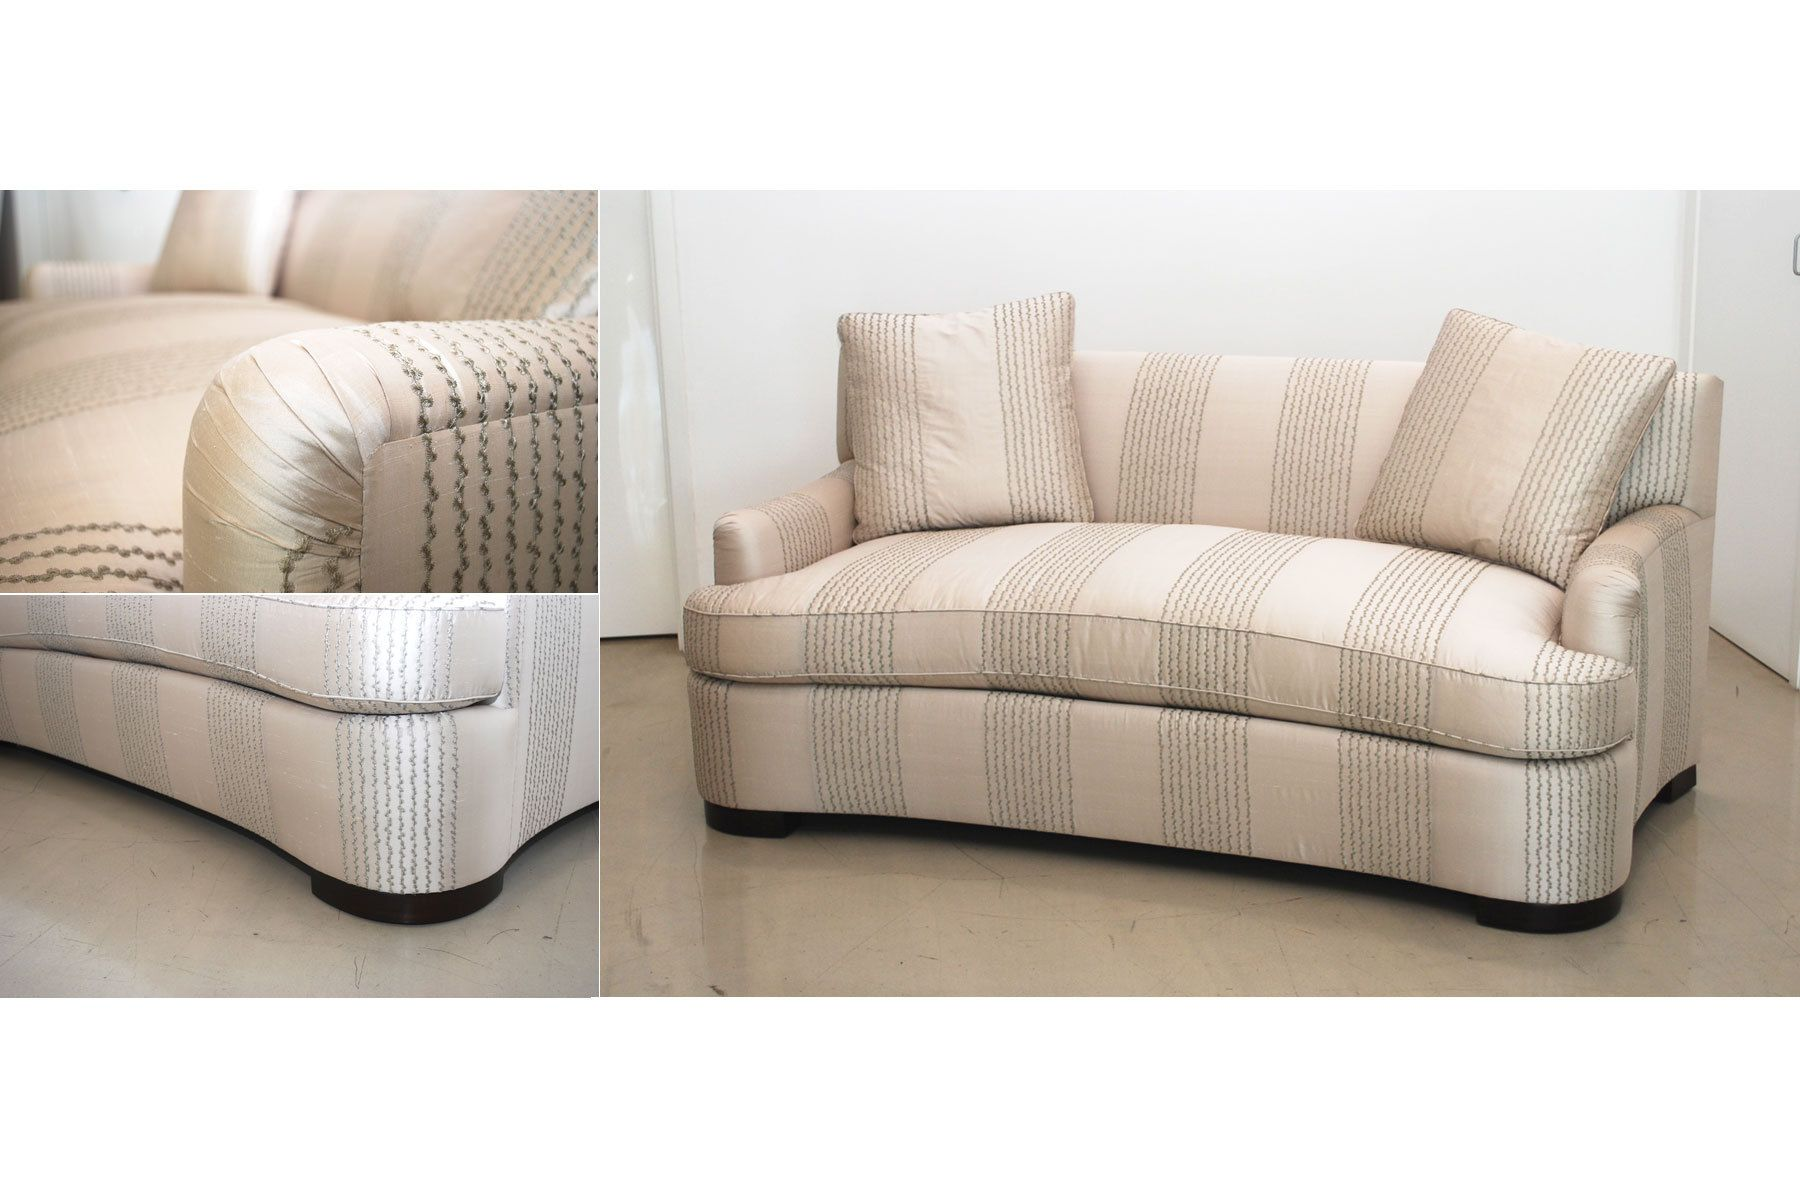 Curved Sofas Sofa Beds Design Latest Trend Ancient Curved